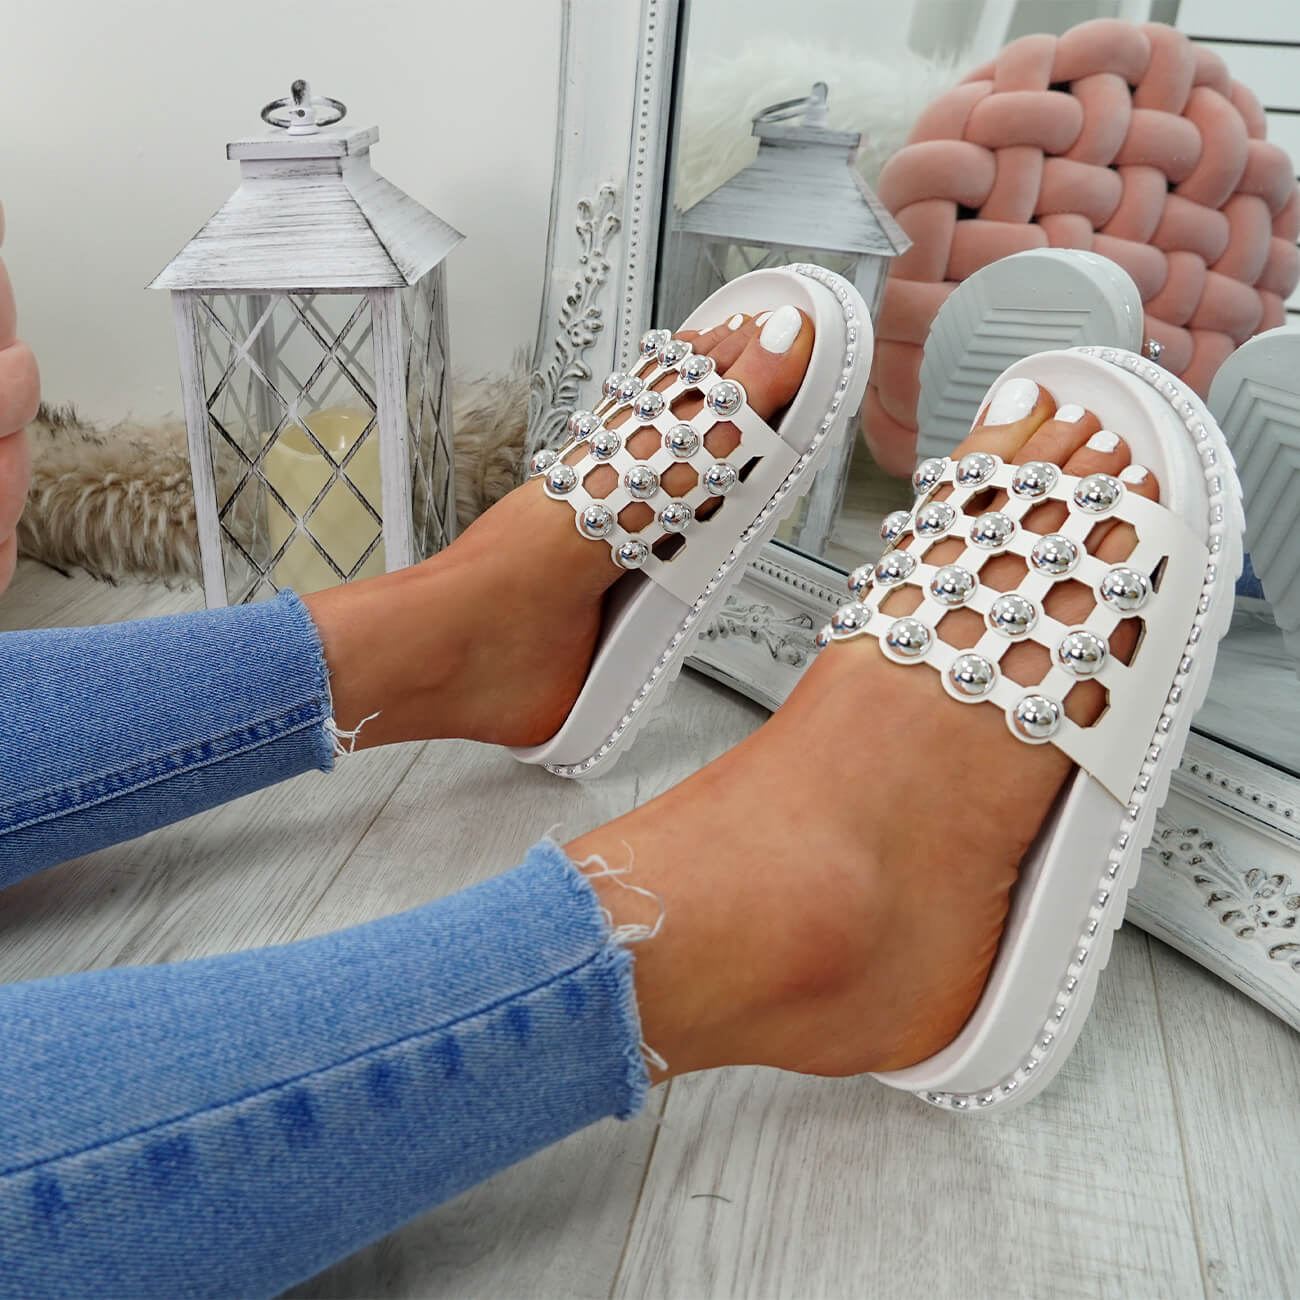 WOMENS-LADIES-PEARL-STUDDED-SLIP-ON-FLAT-SANDALS-HEELS-FLIP-FLOP-SHOES-SIZE thumbnail 22